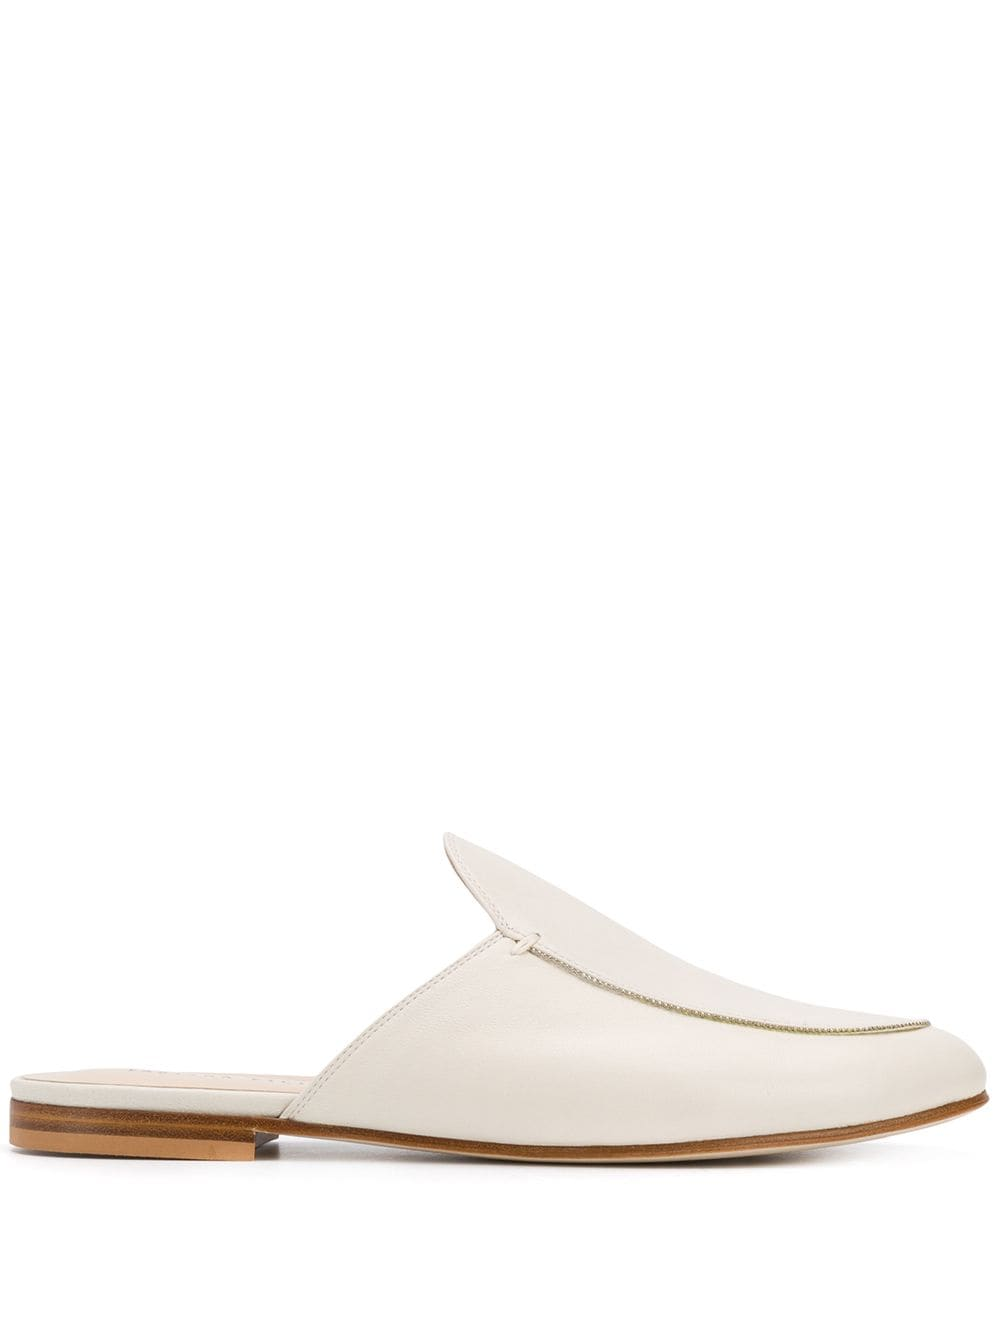 Bianca Leather Slippers